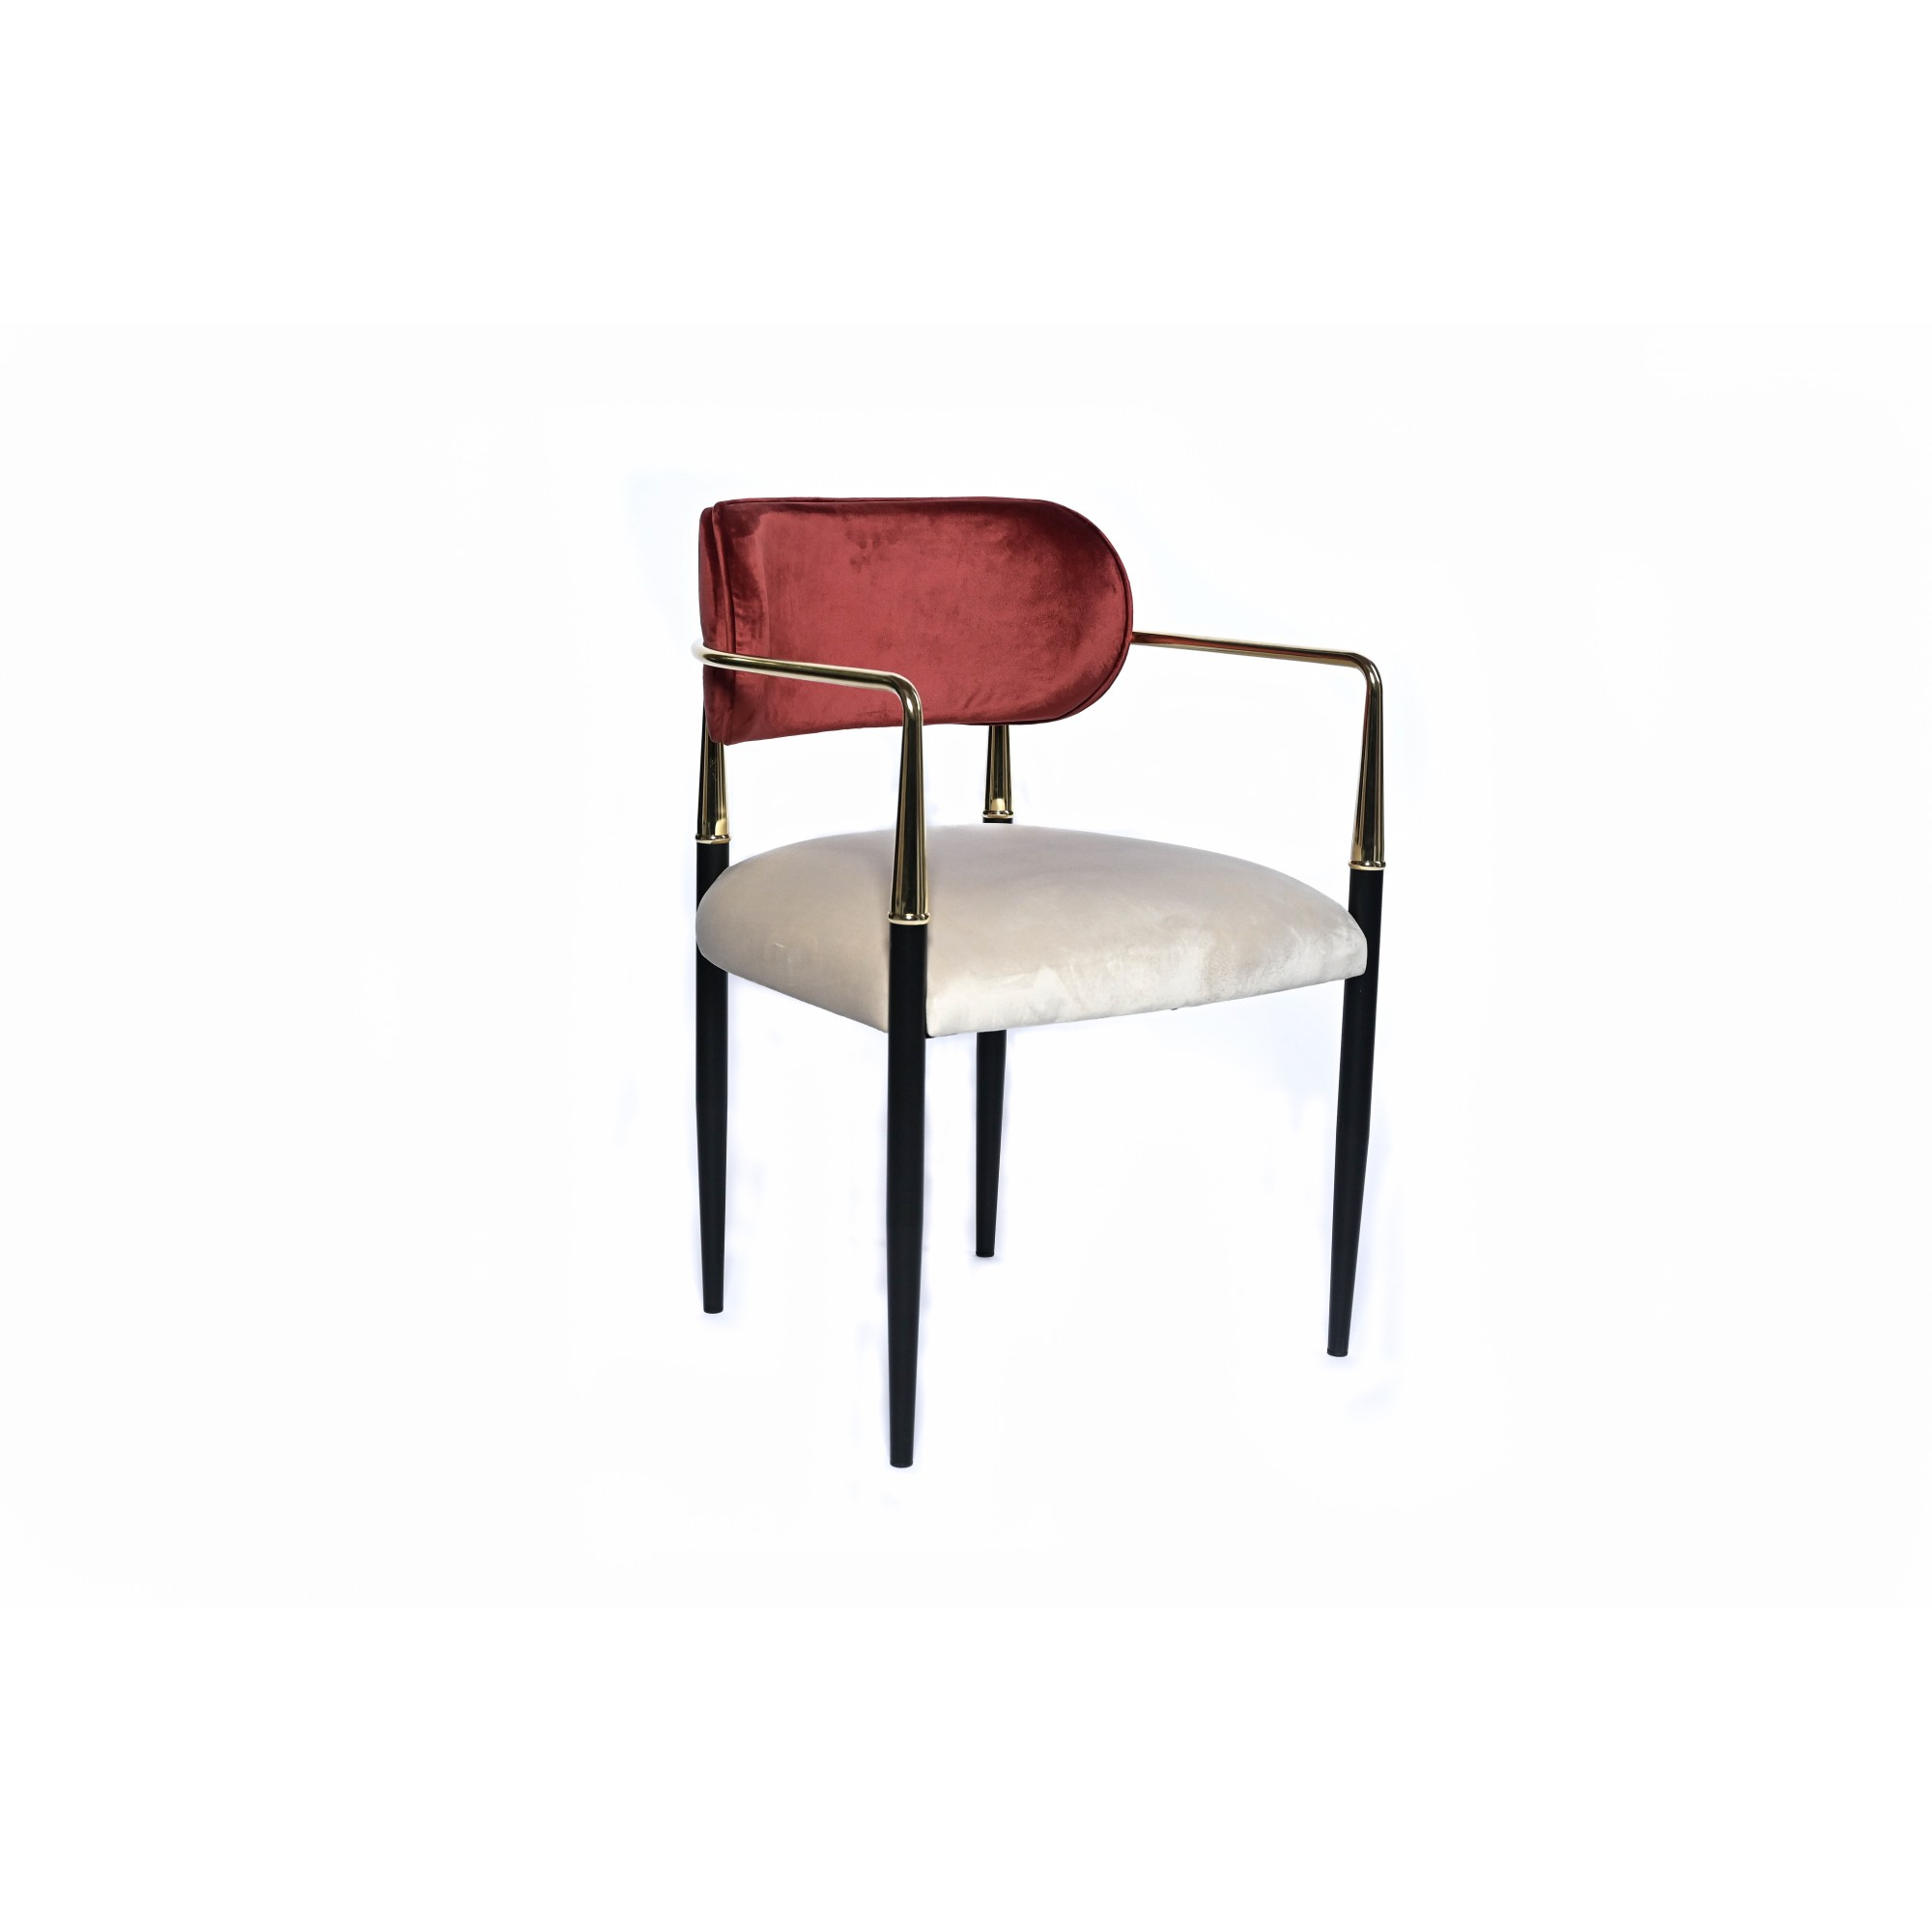 Chair with black metal structure, fully upholstered in beige and burgundy velvet, with gold handles - HAMILTON